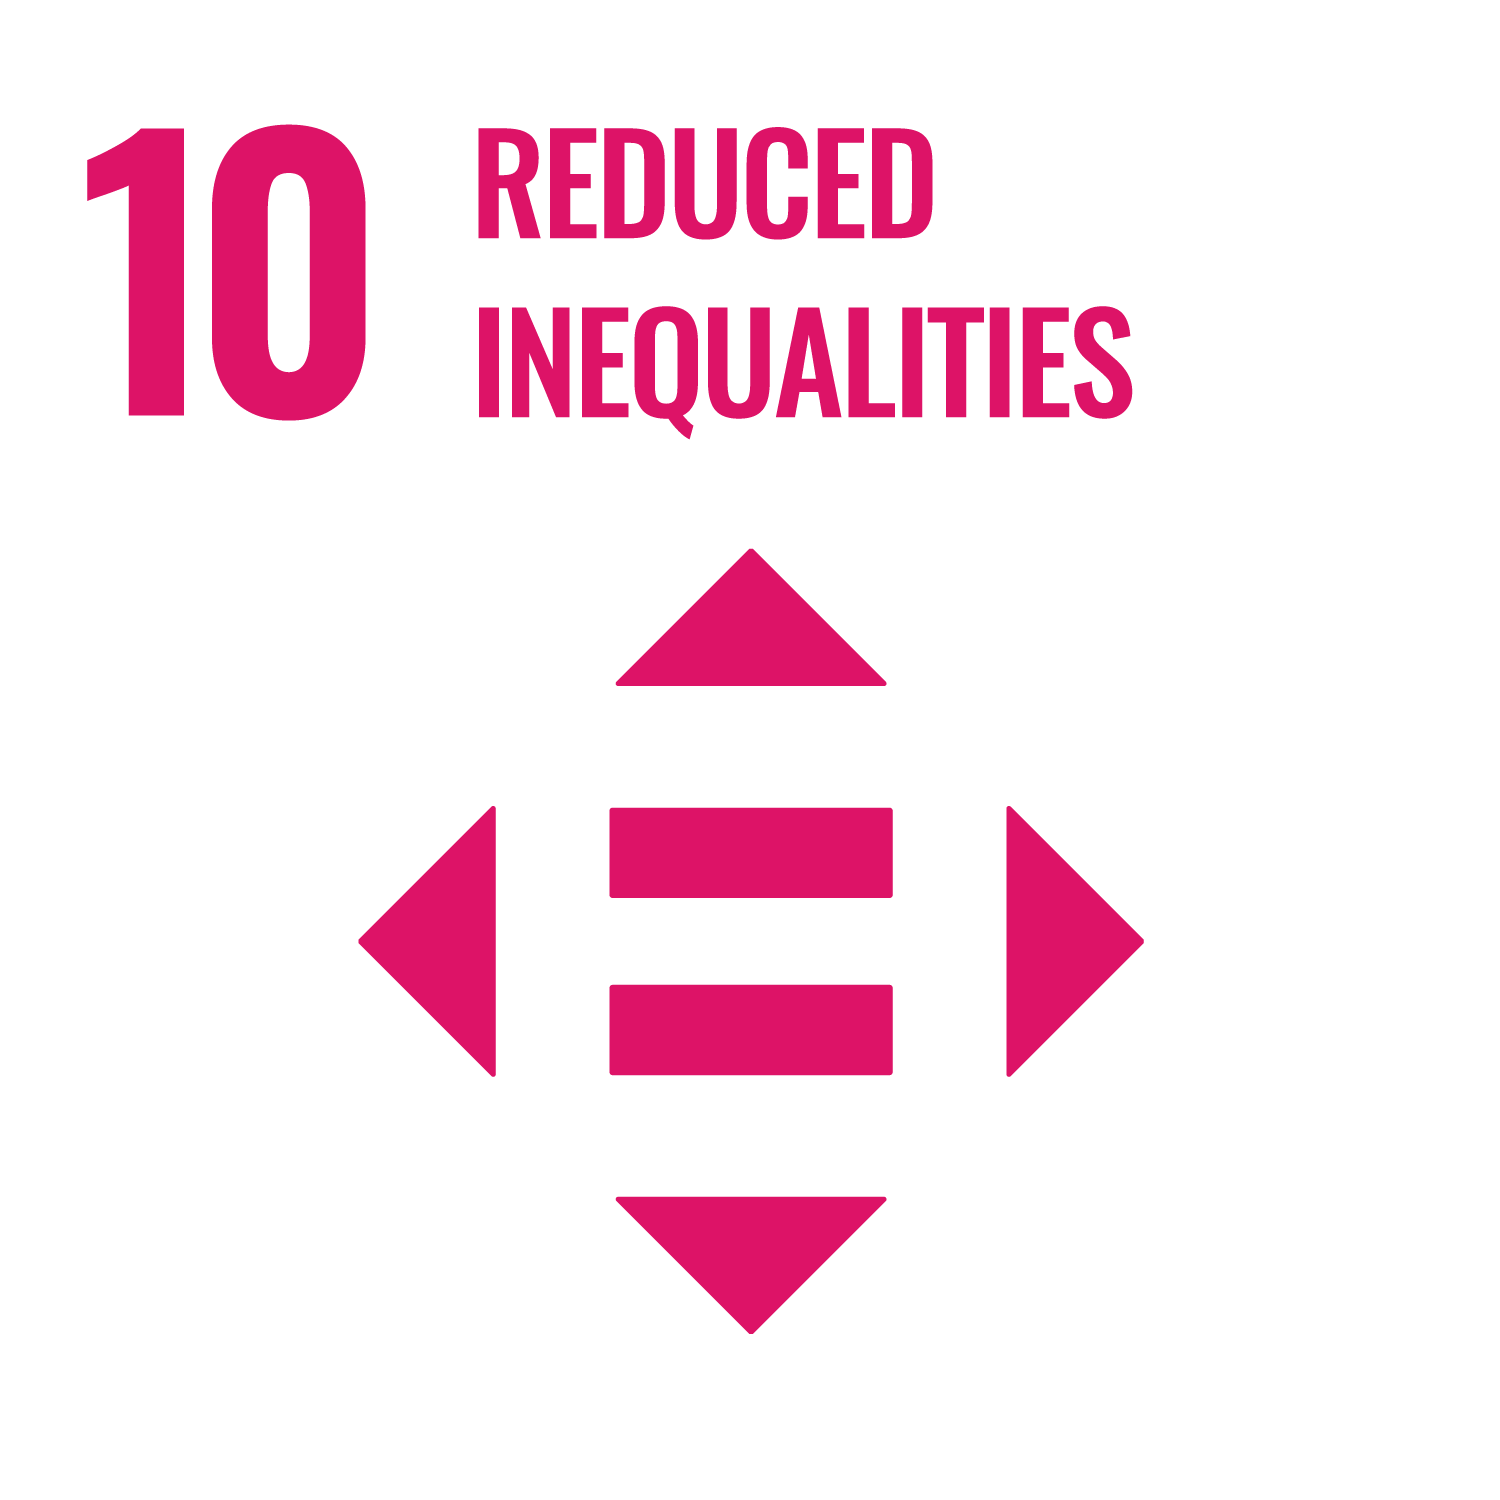 United Nations Sustainable Development Goals - reduced inequalities